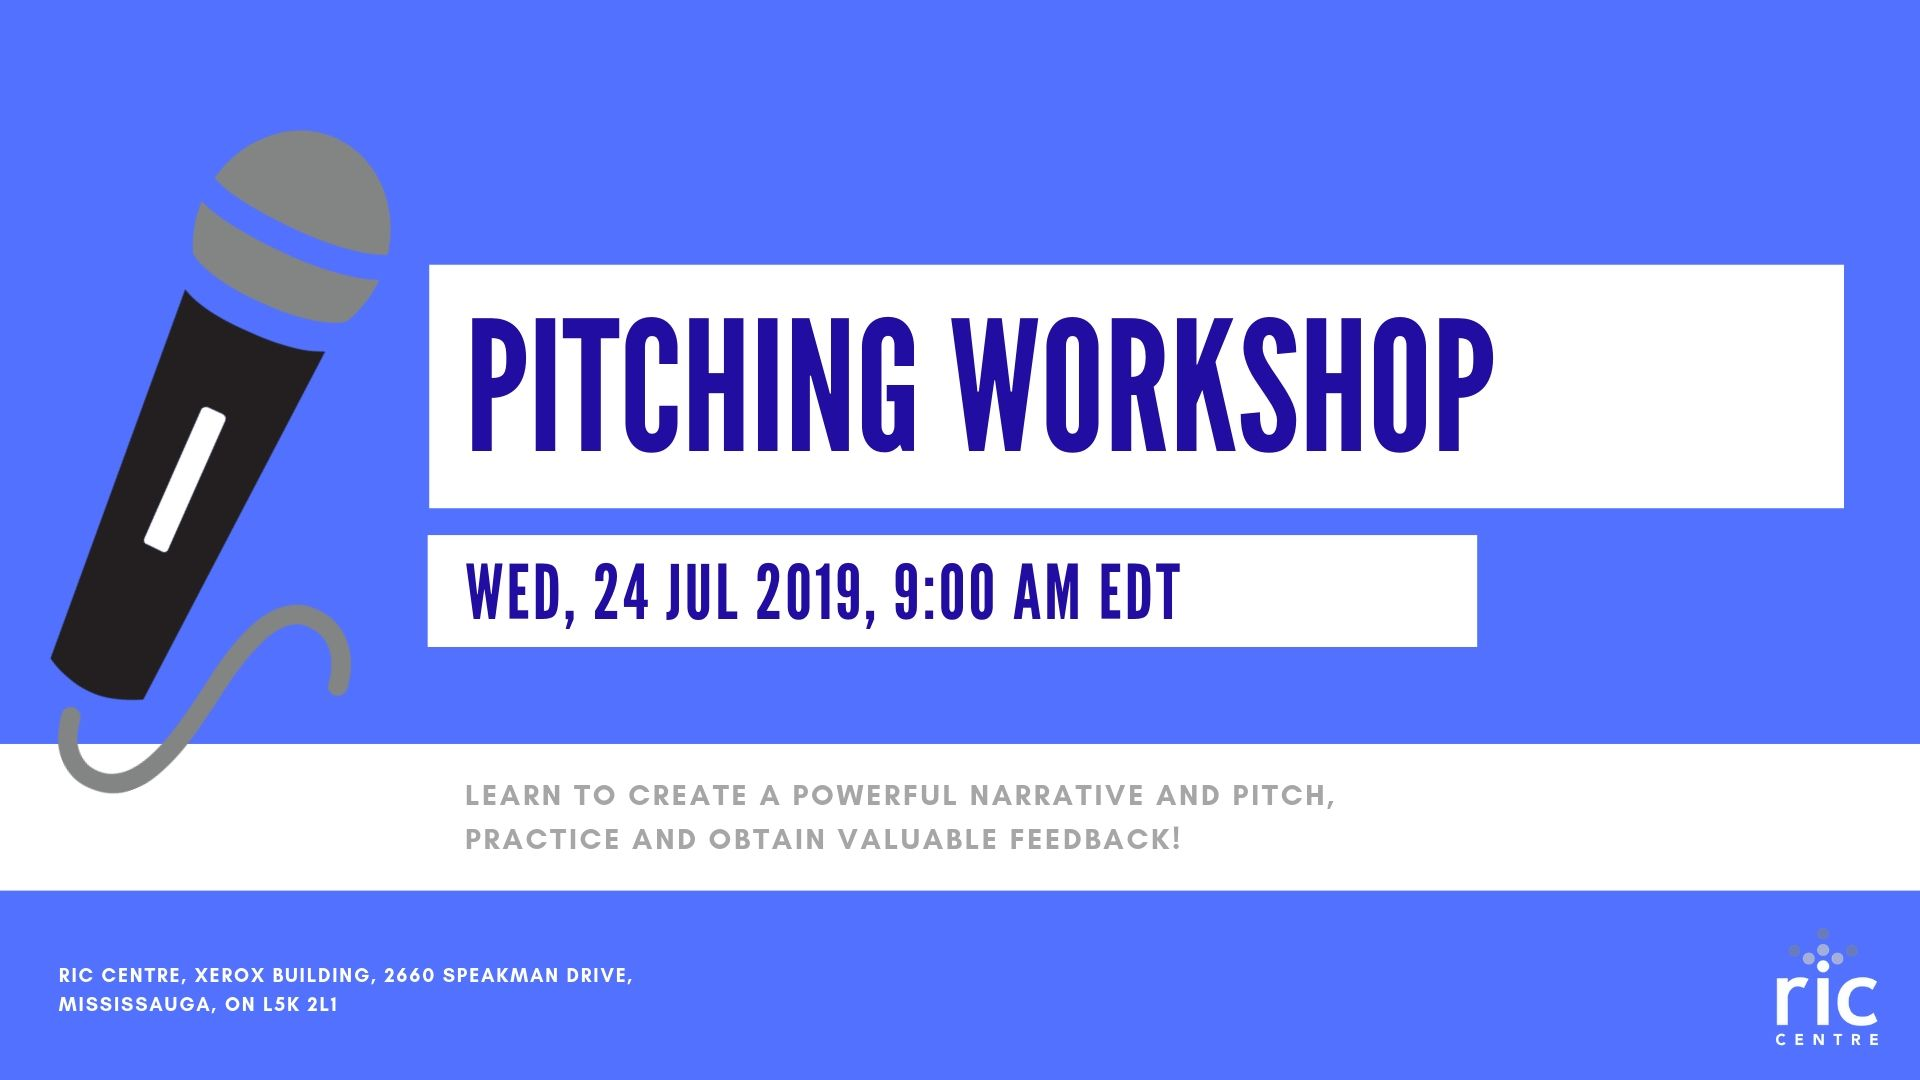 RIC Centre Pitching Workshop @ RIC Centre